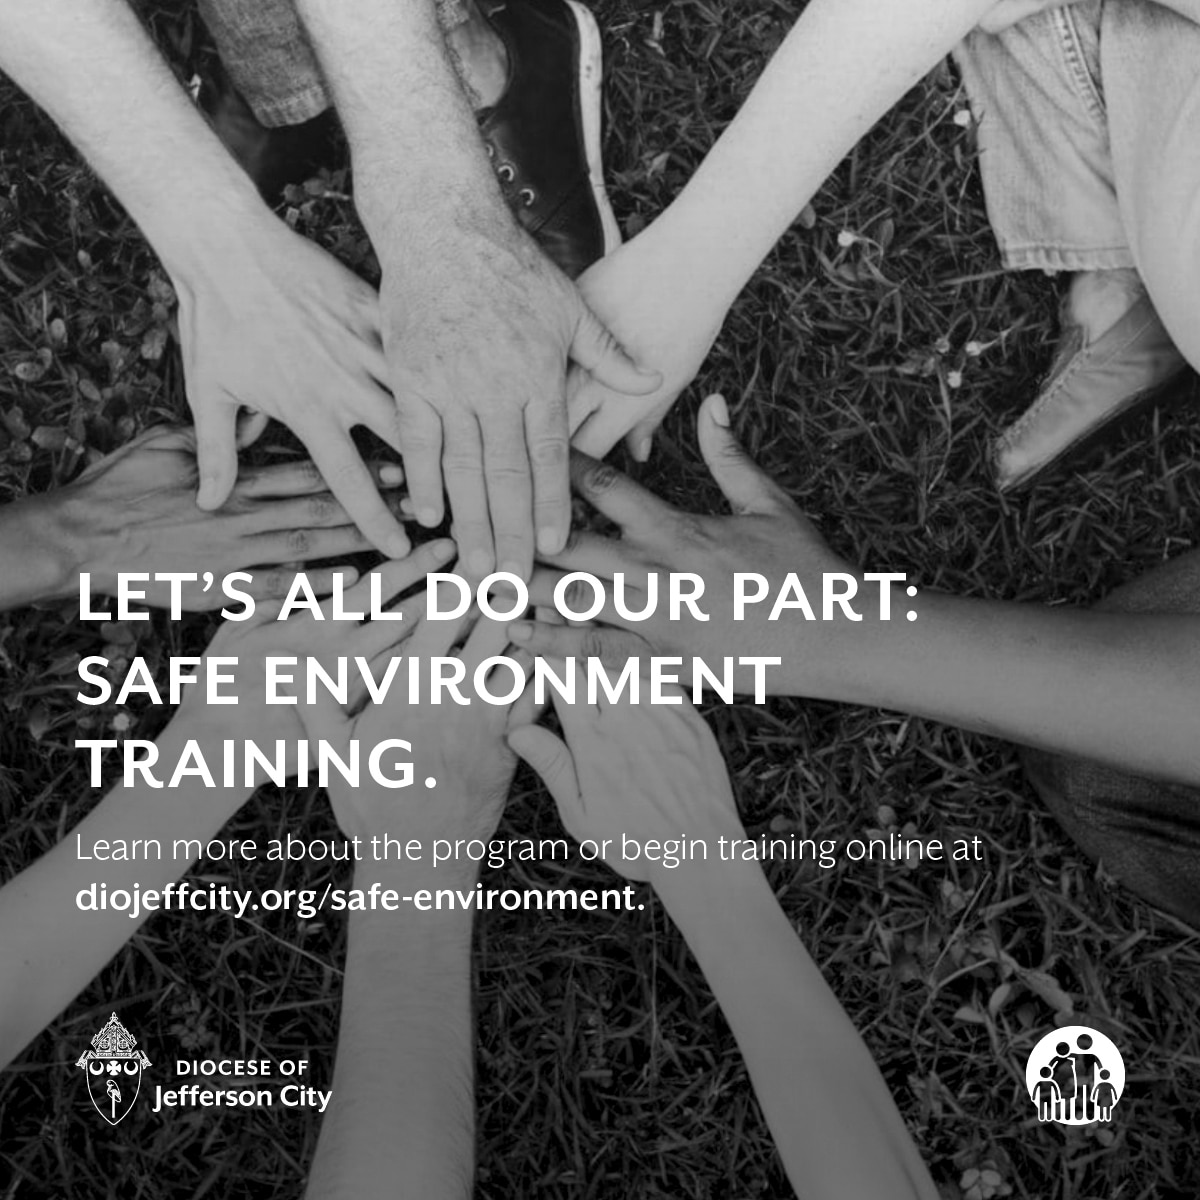 Let's do our part: Safe Environment Training